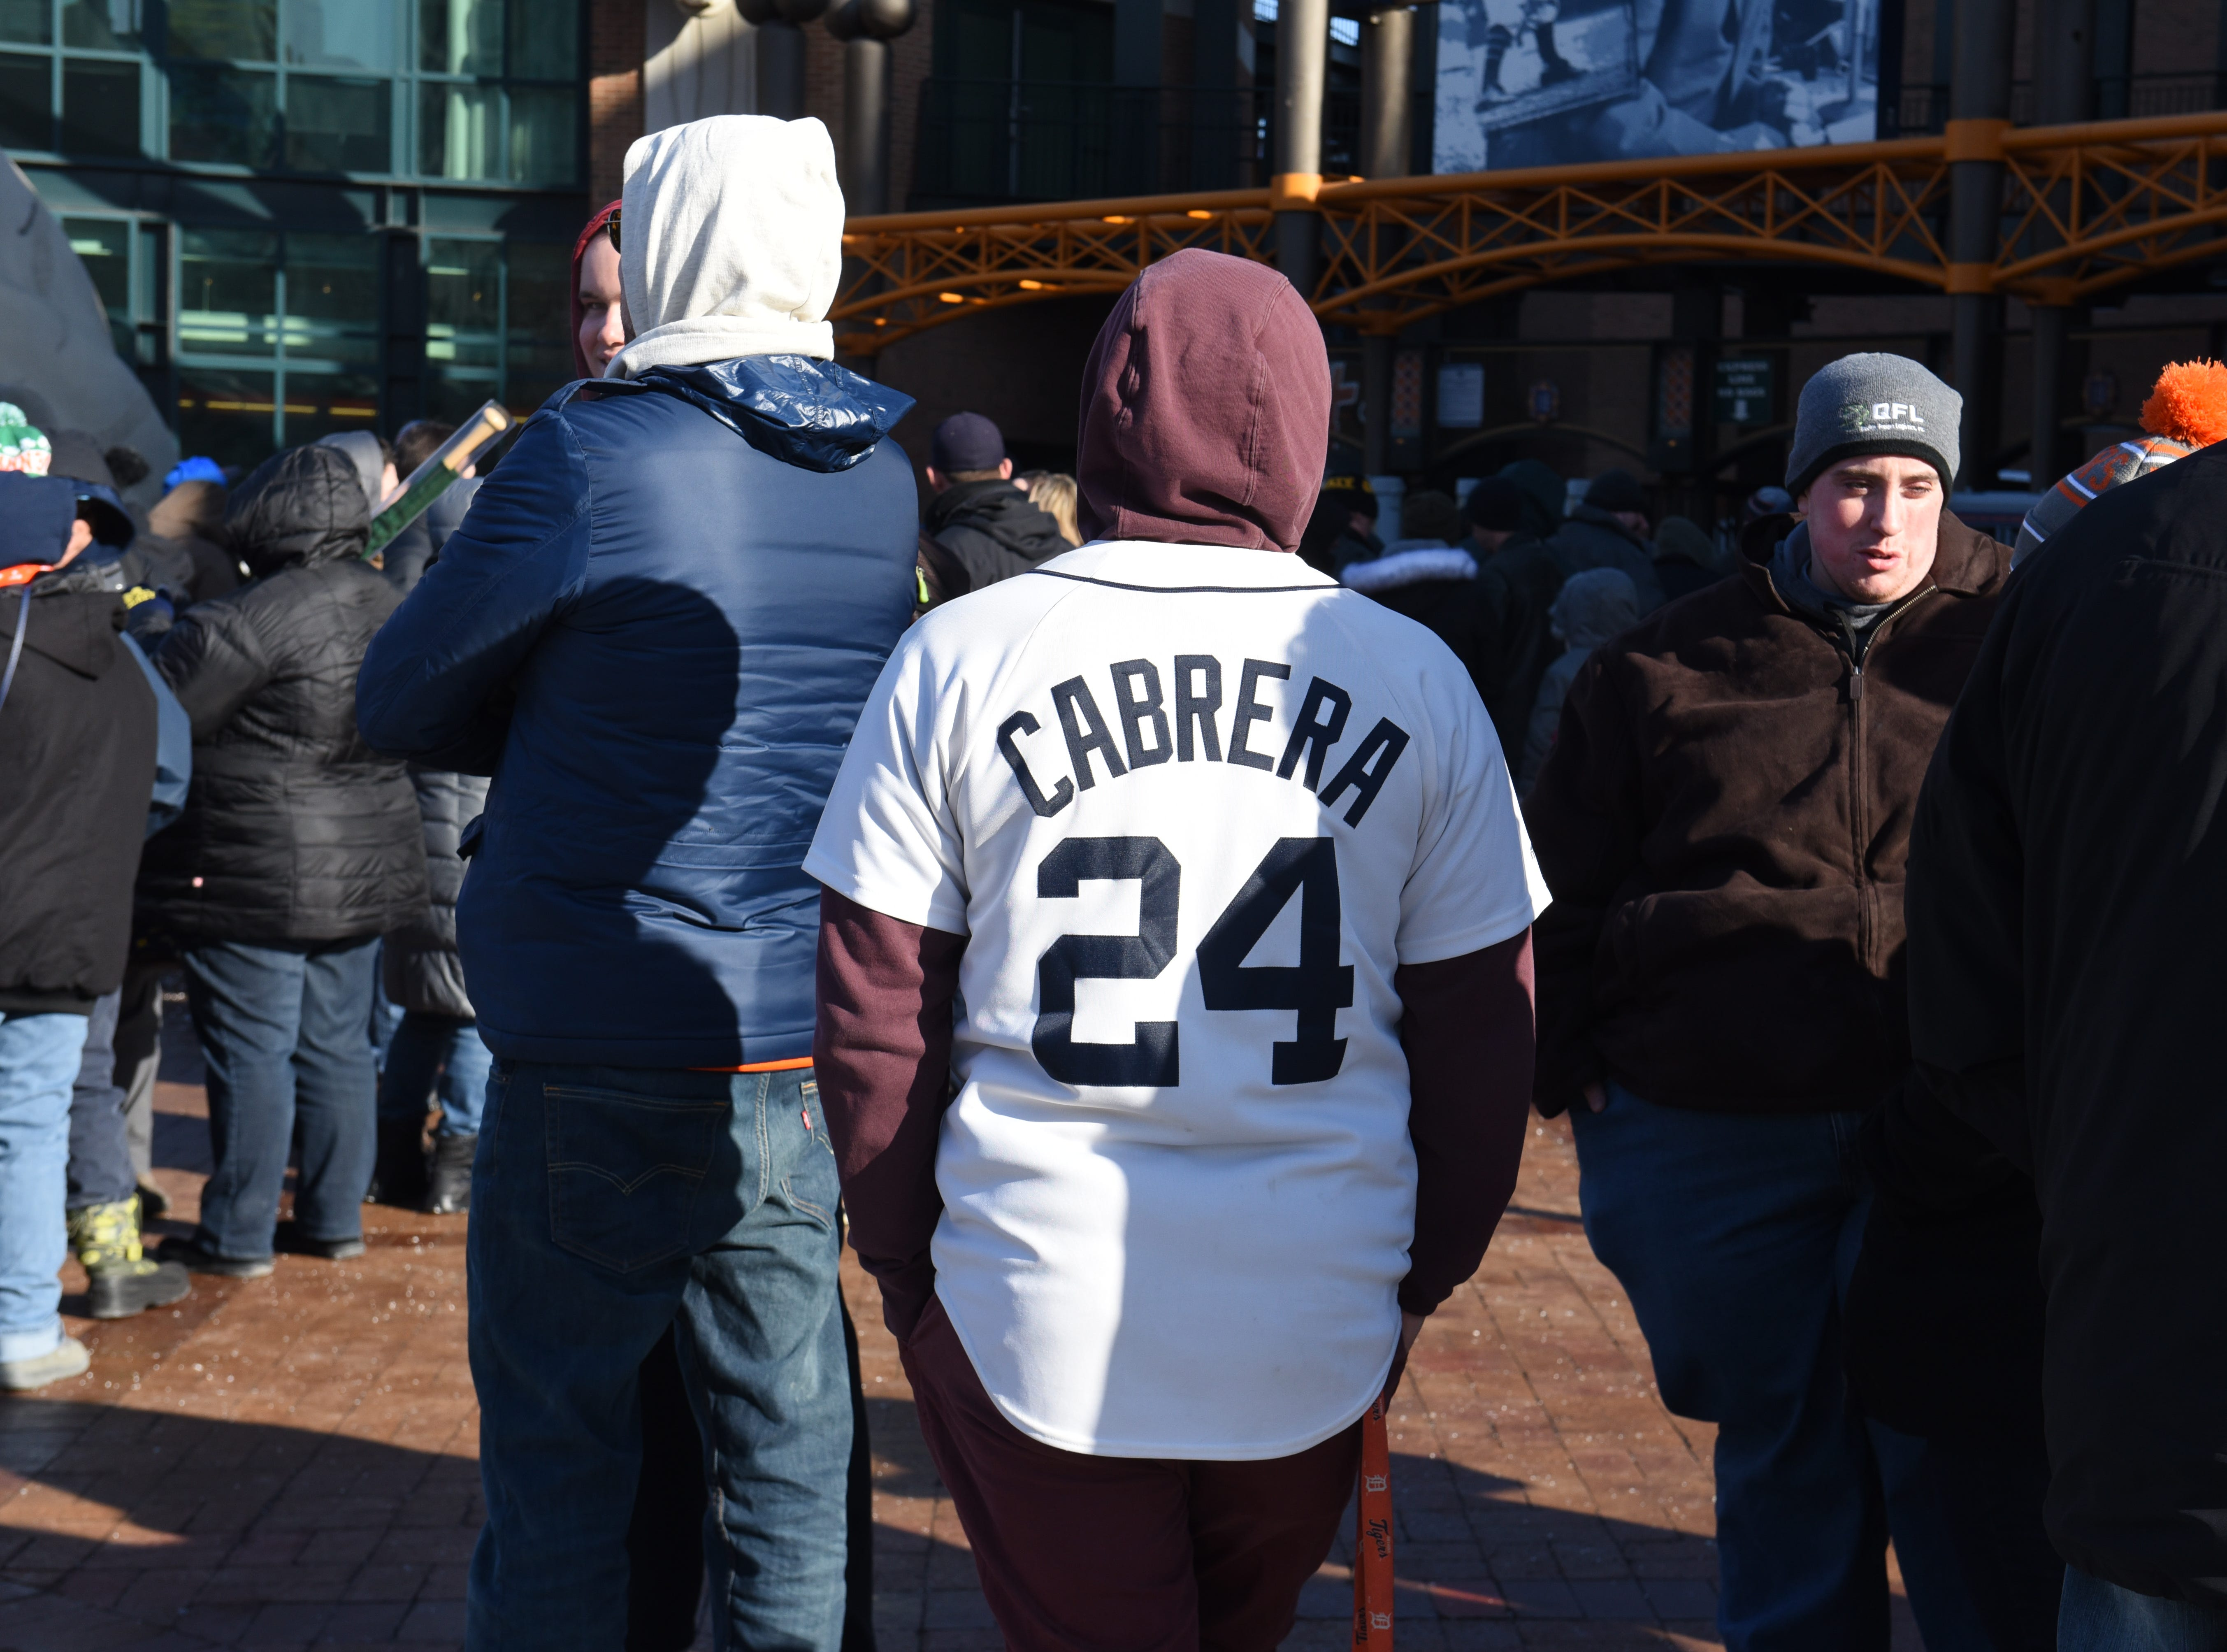 A fan wears his Miguel Cabrera jersey outside Comerica Park for TigerFest 2019 in Detroit on Saturday, January 26, 2019.